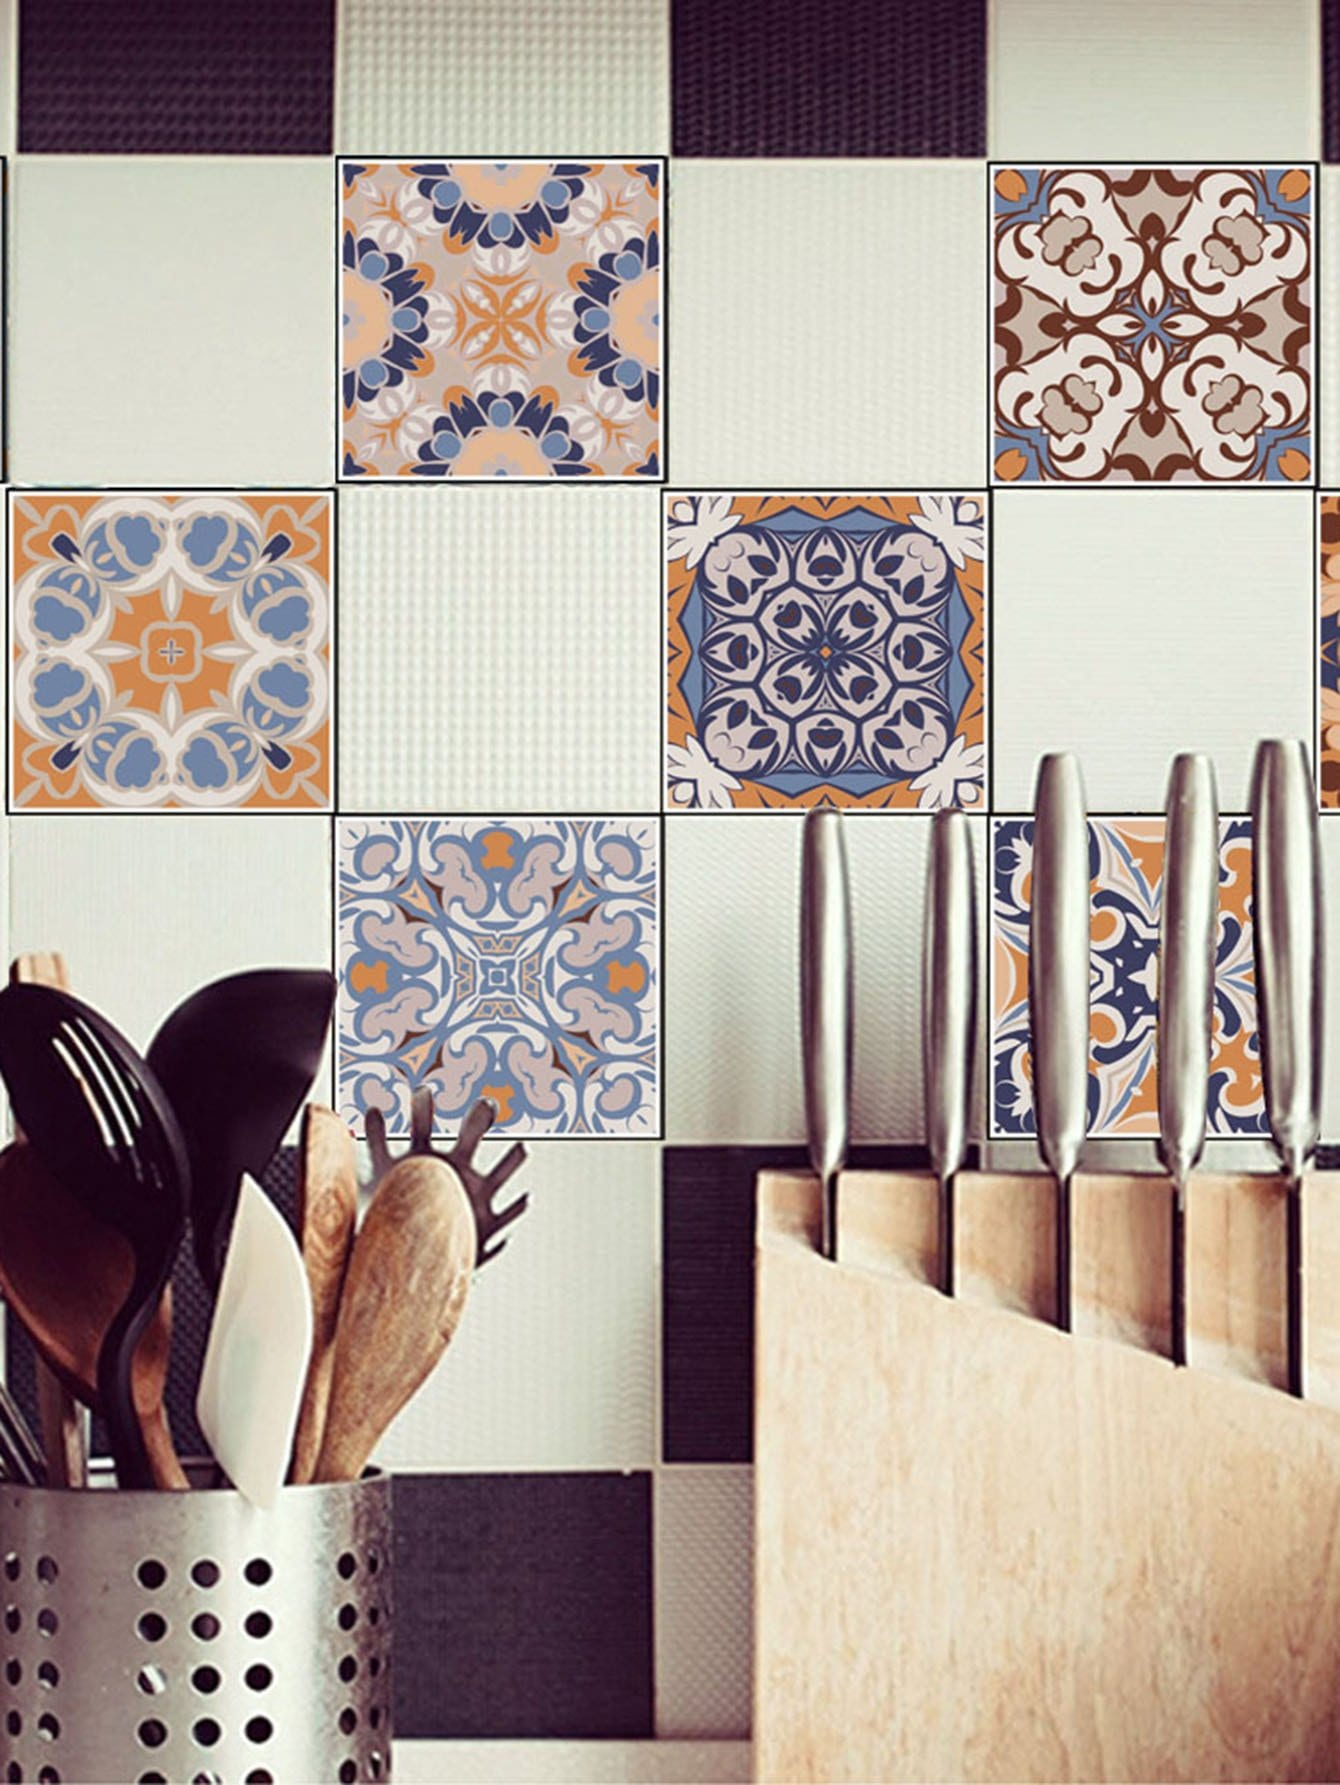 Random Symmetrical Pattern Ceramic Tile Sticker 1pc random brick patchwork ceramic tile sticker 1pc